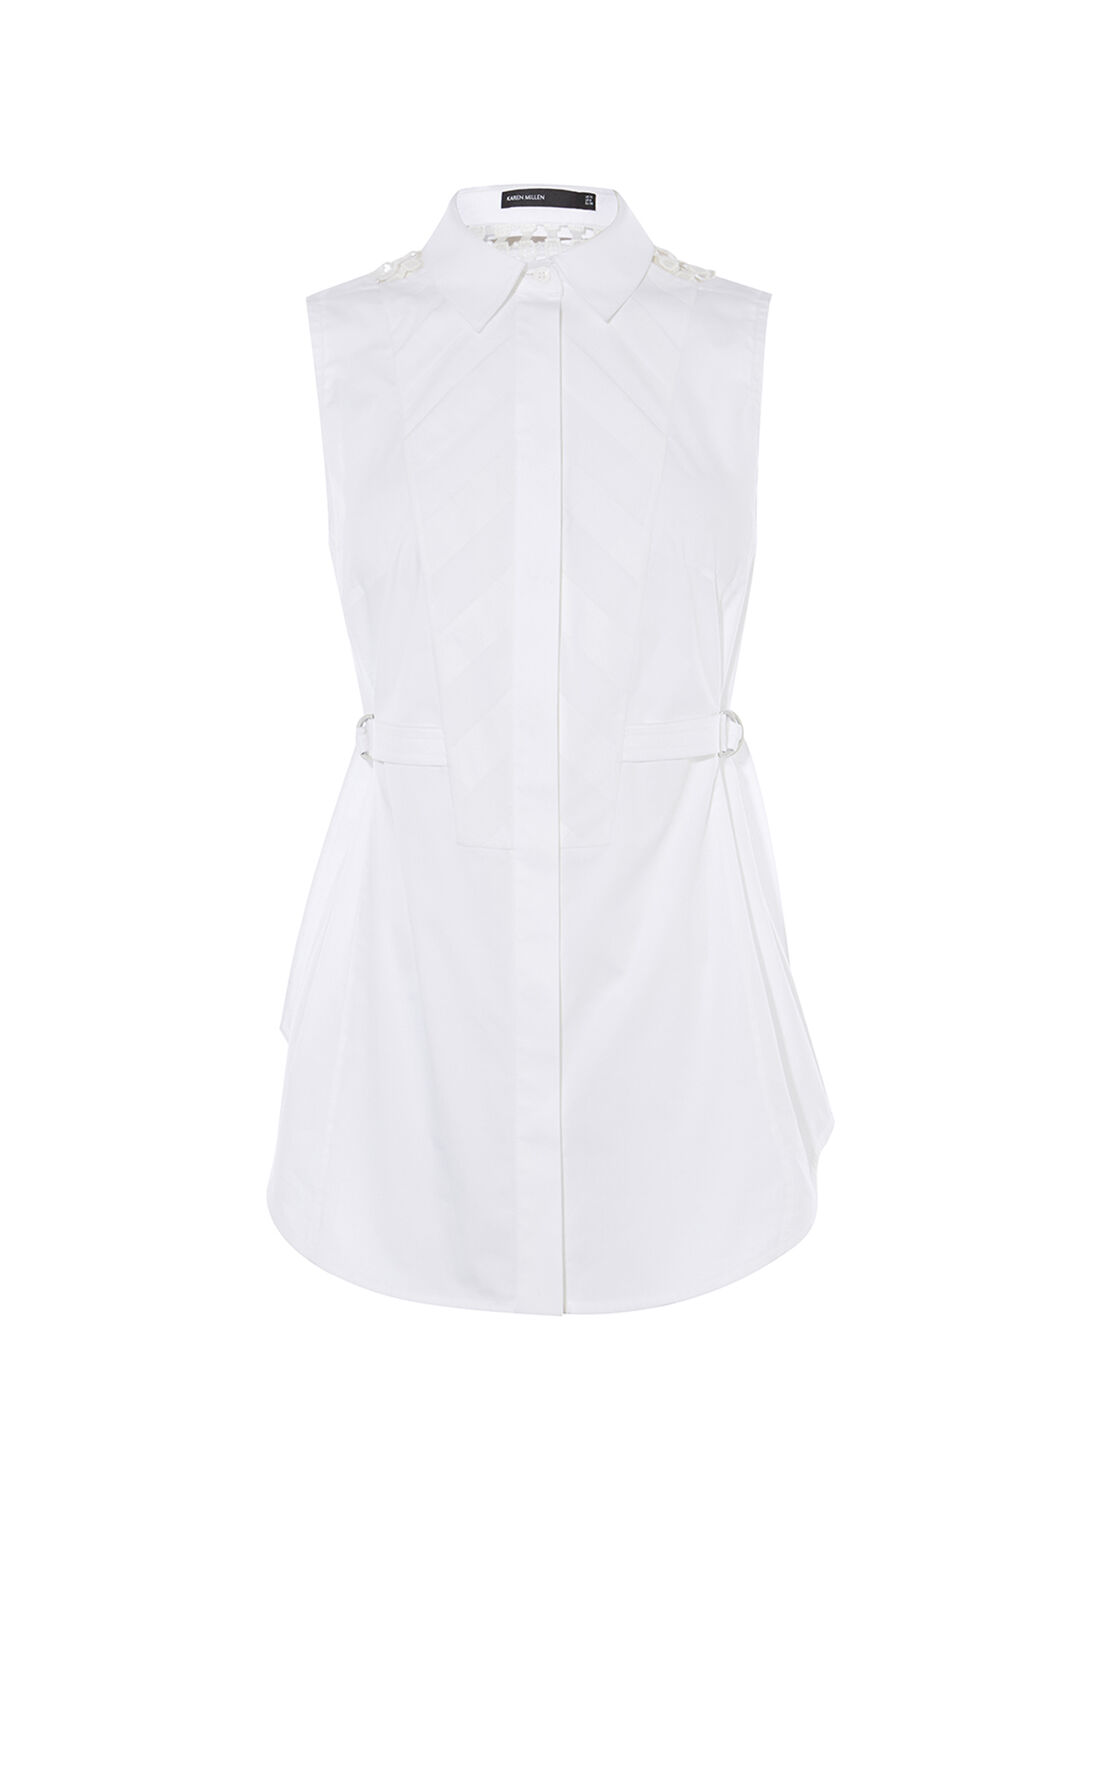 Karen Millen, SLEEVELESS SHIRT White 0